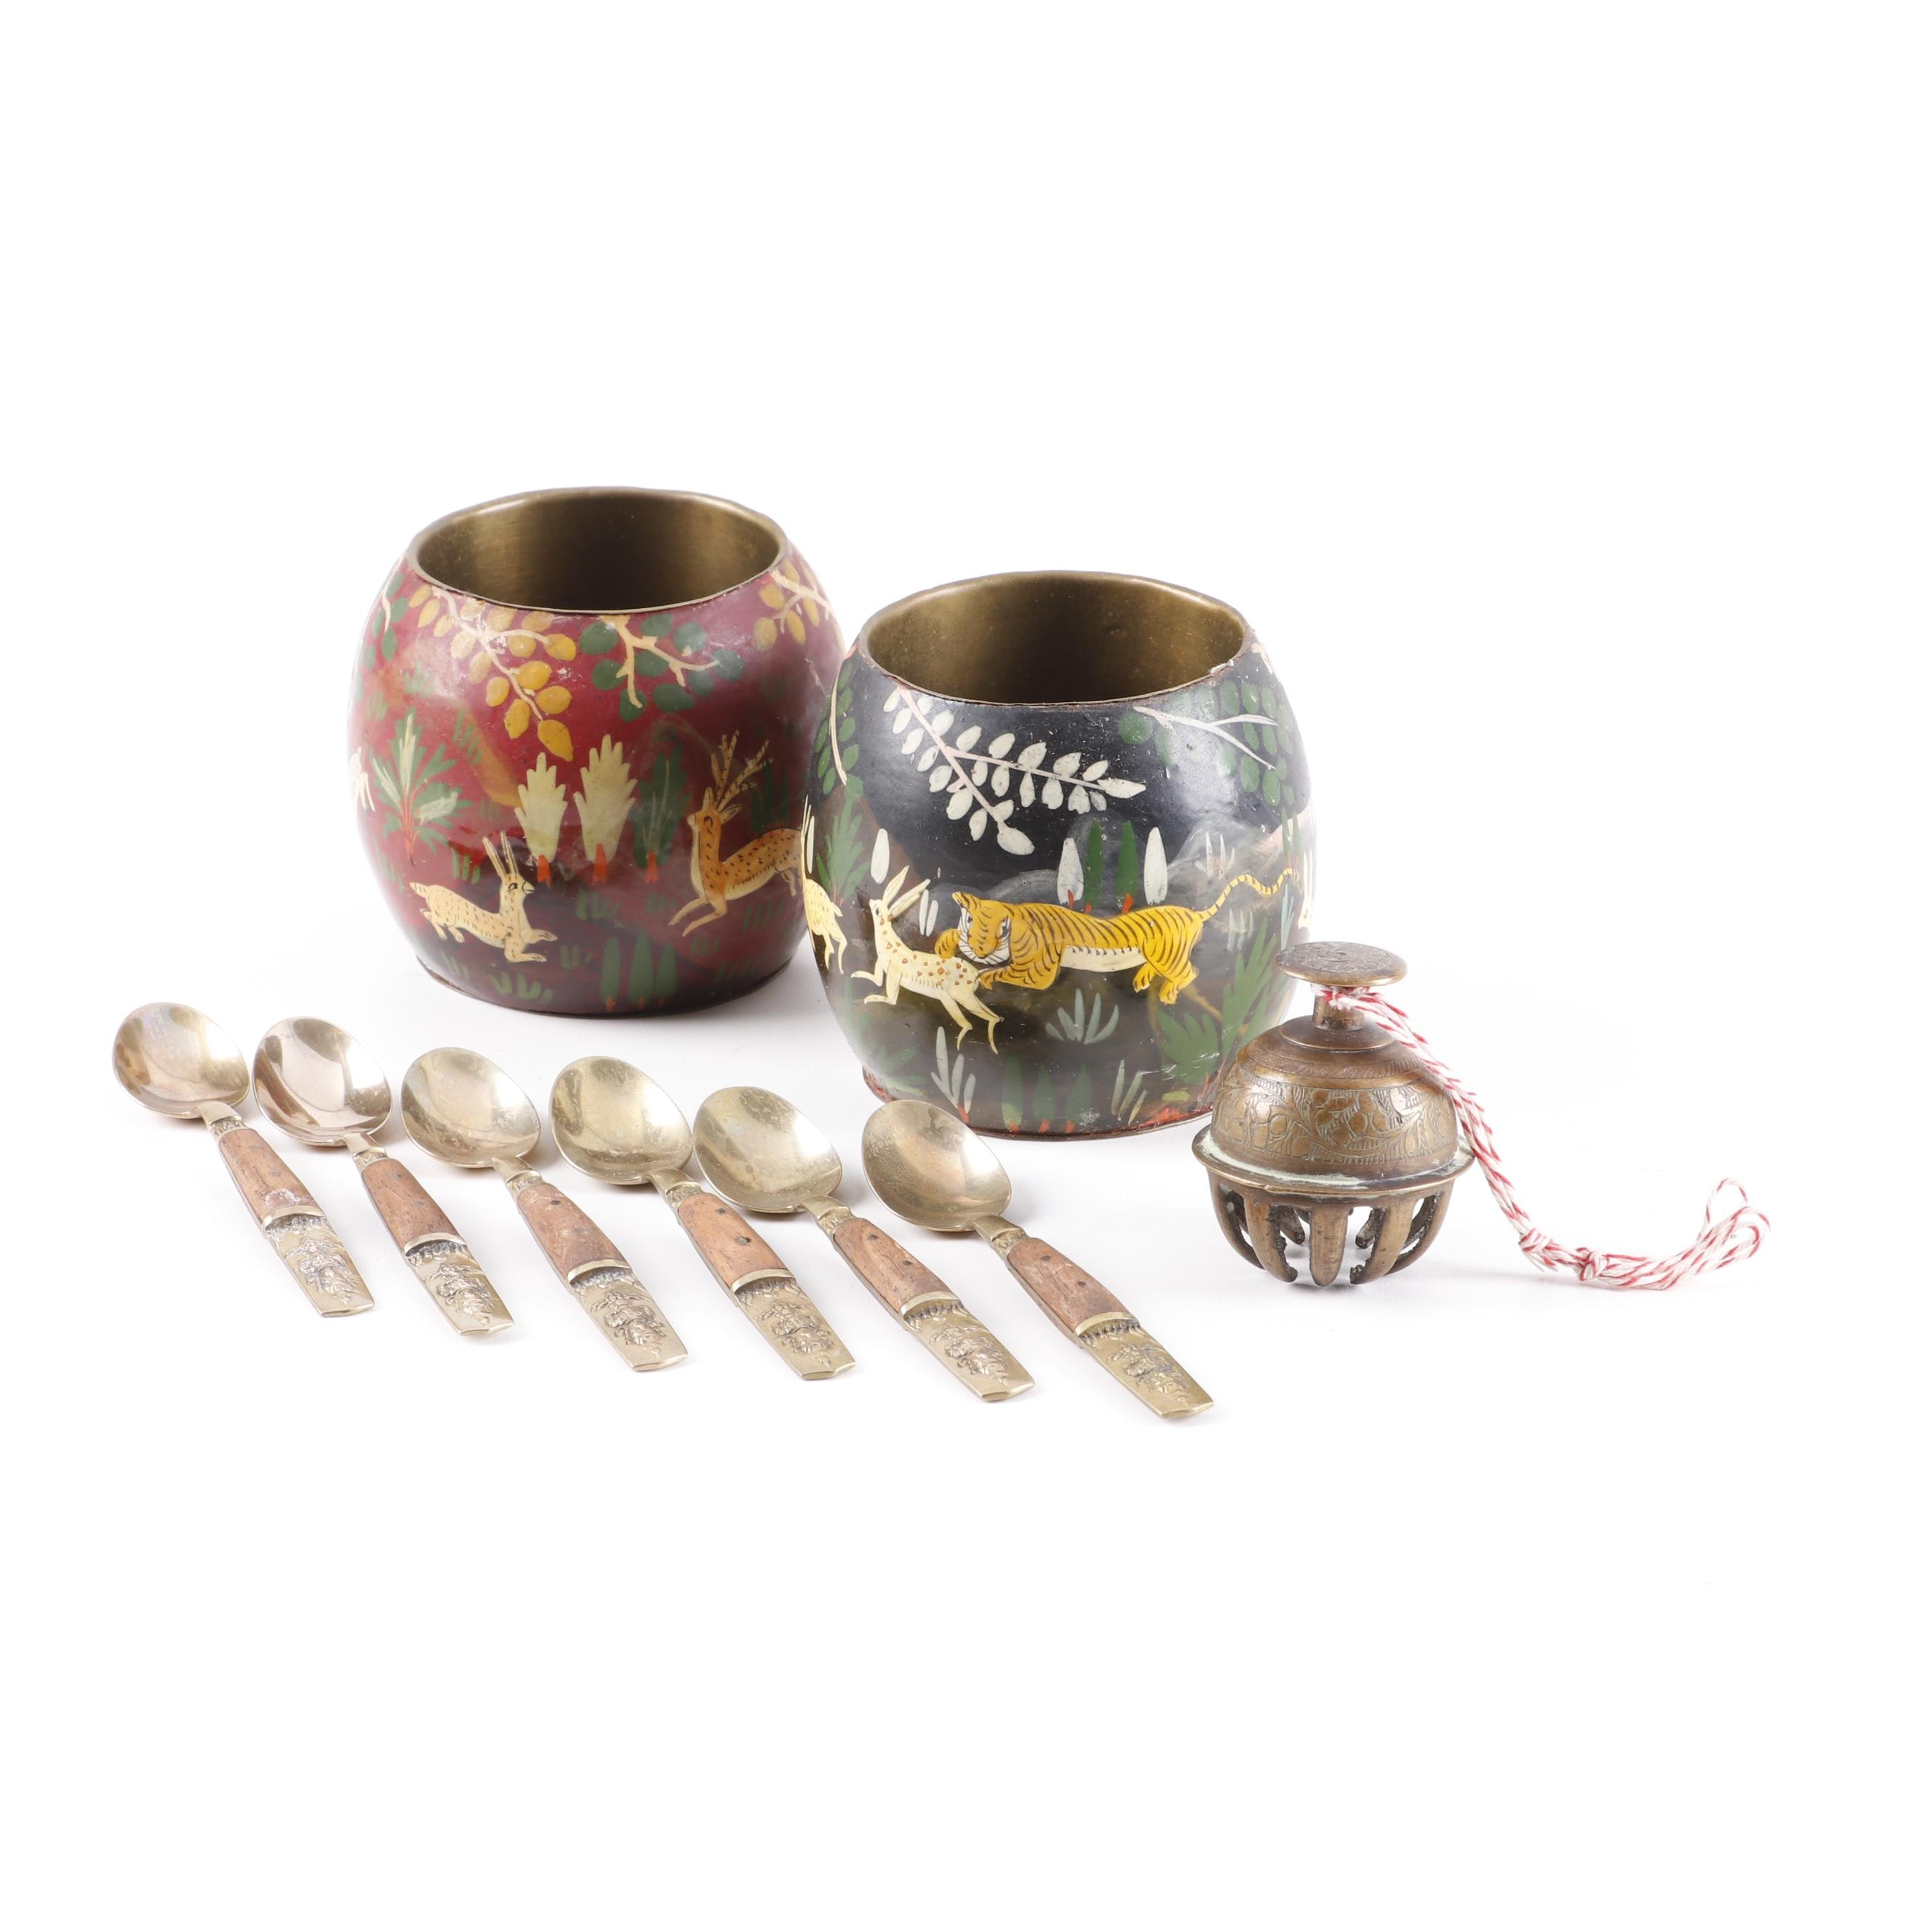 Thai Flatware with Hand Painted Pots